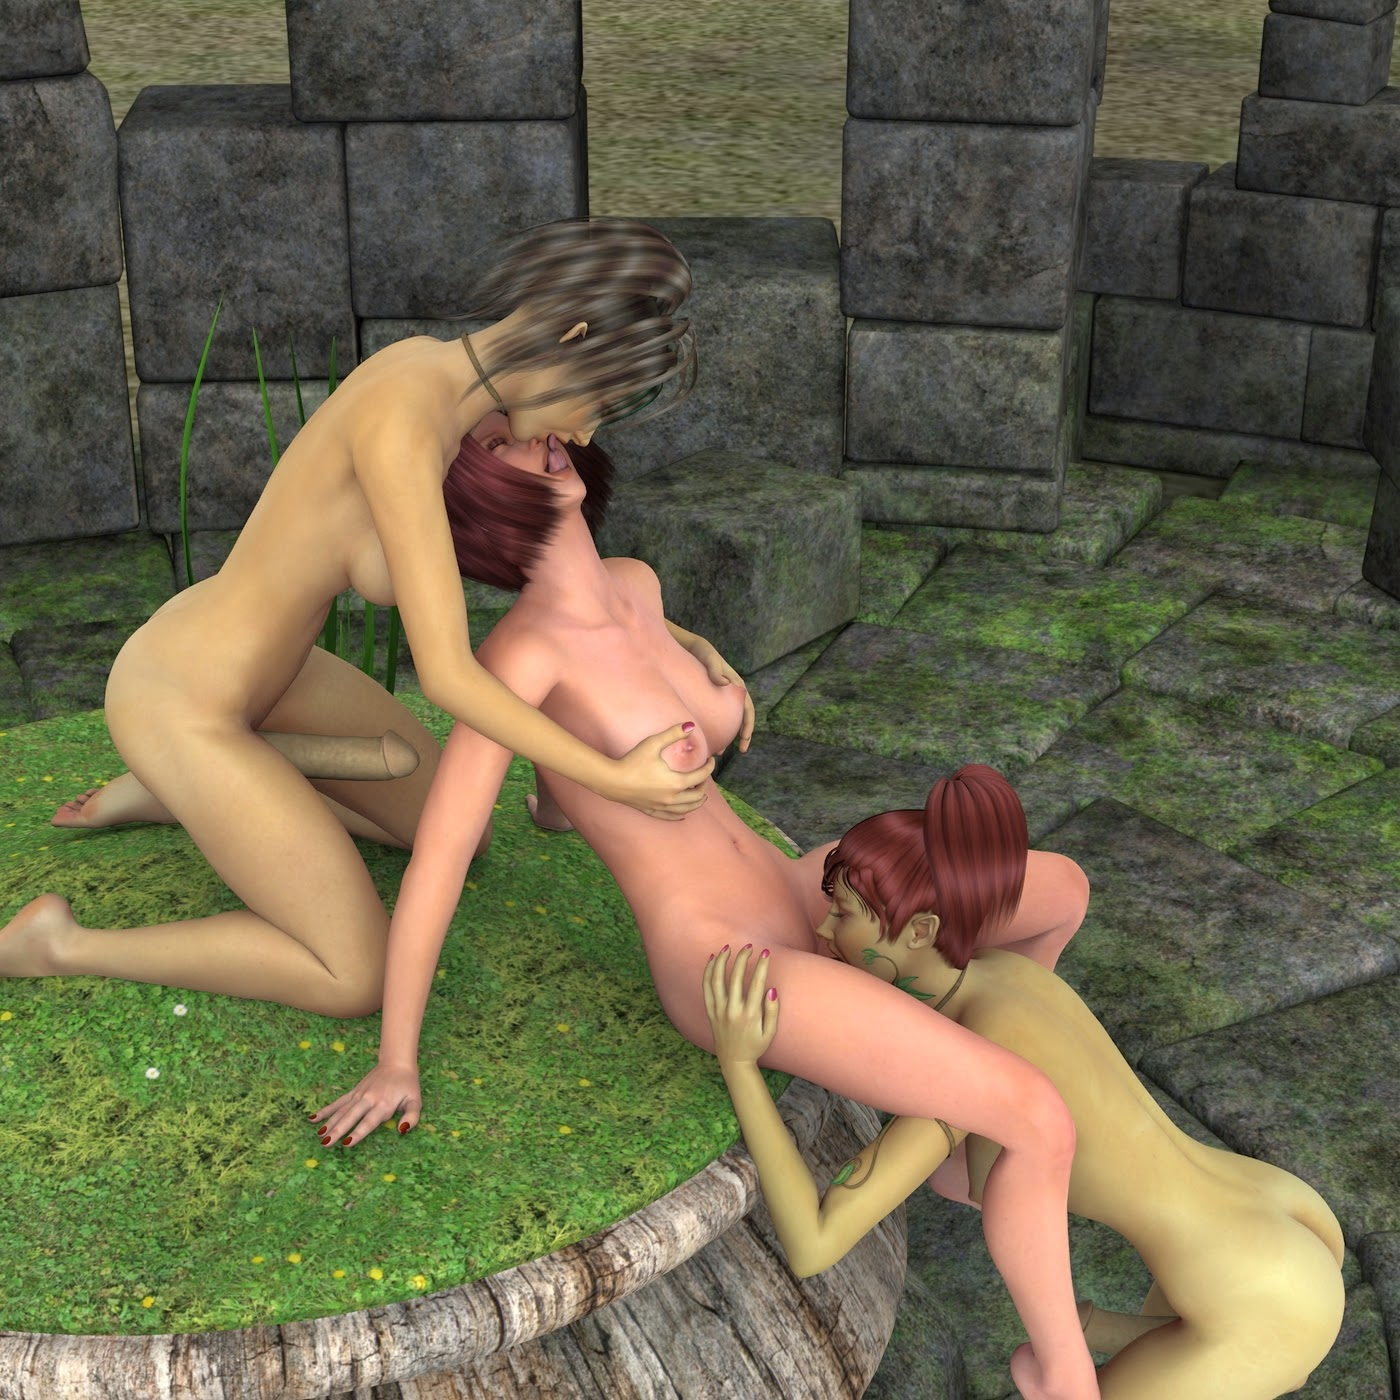 Baldurs gate 2-warcraft girl nude exposed tube